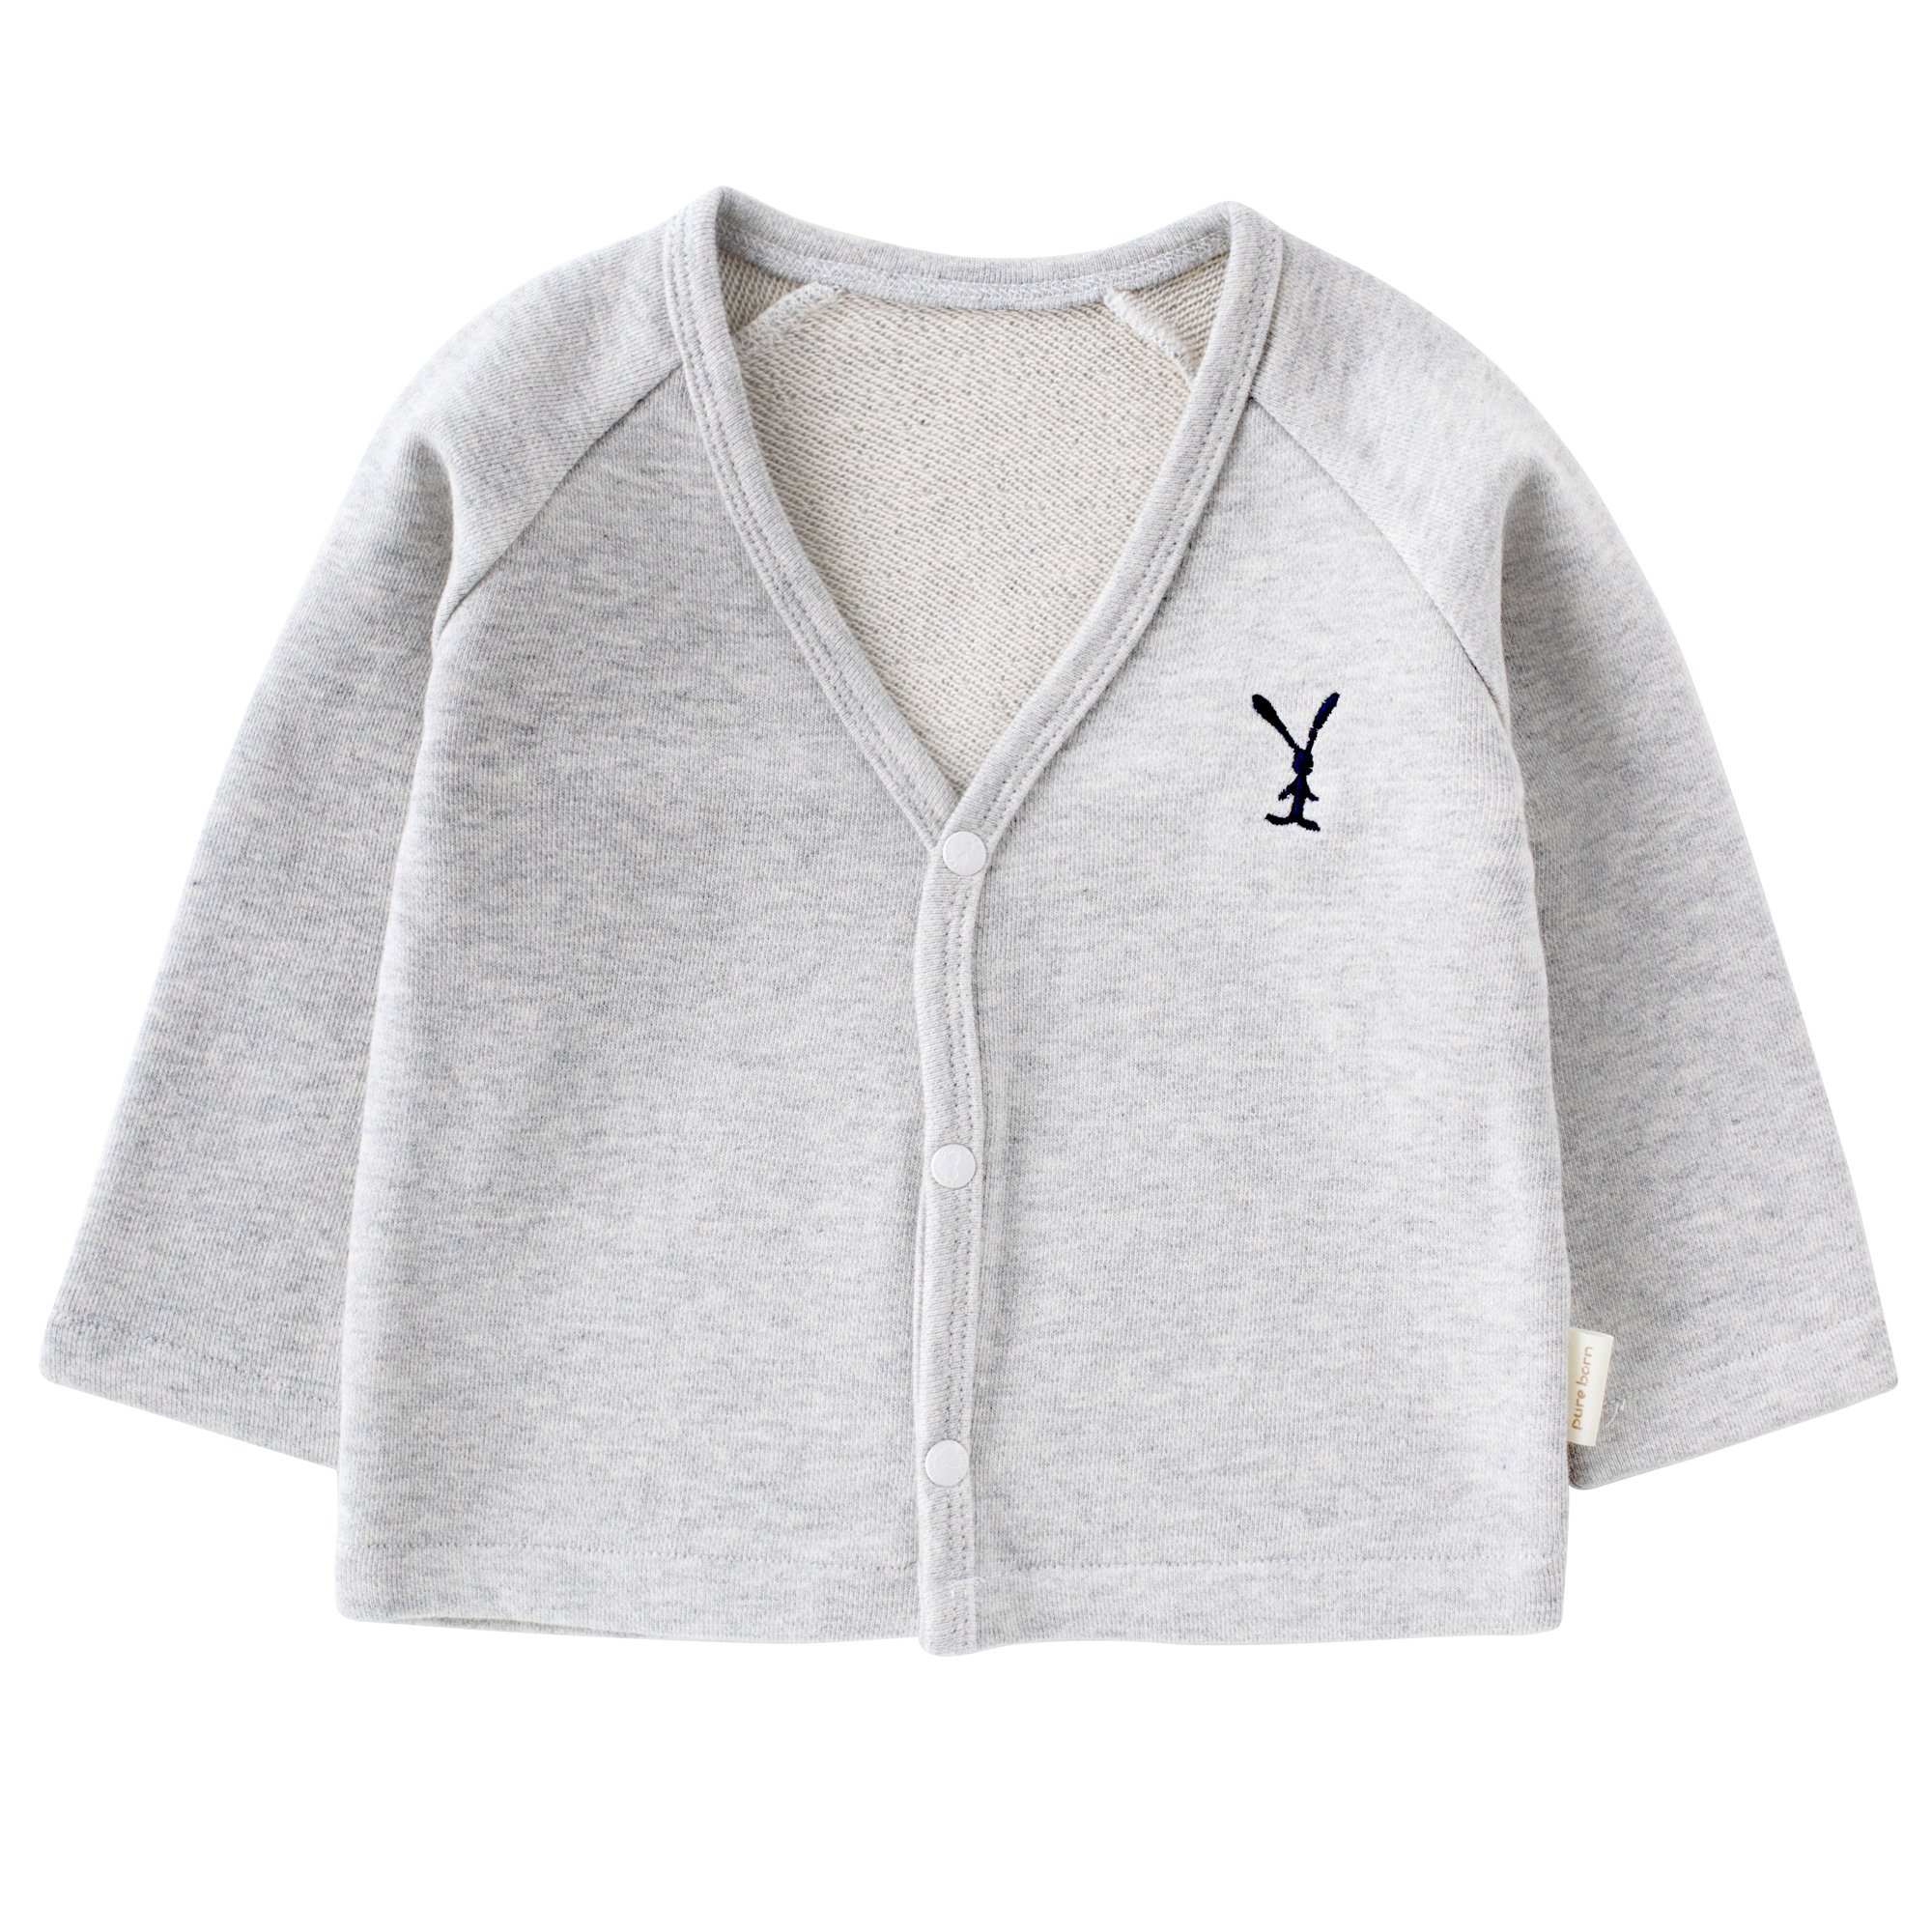 pureborn Baby Boys Girls V-Neck Solid Cardigan Sweater Kid Cotton Clothes Coats Outwear Autumn Grey 3-6 Months